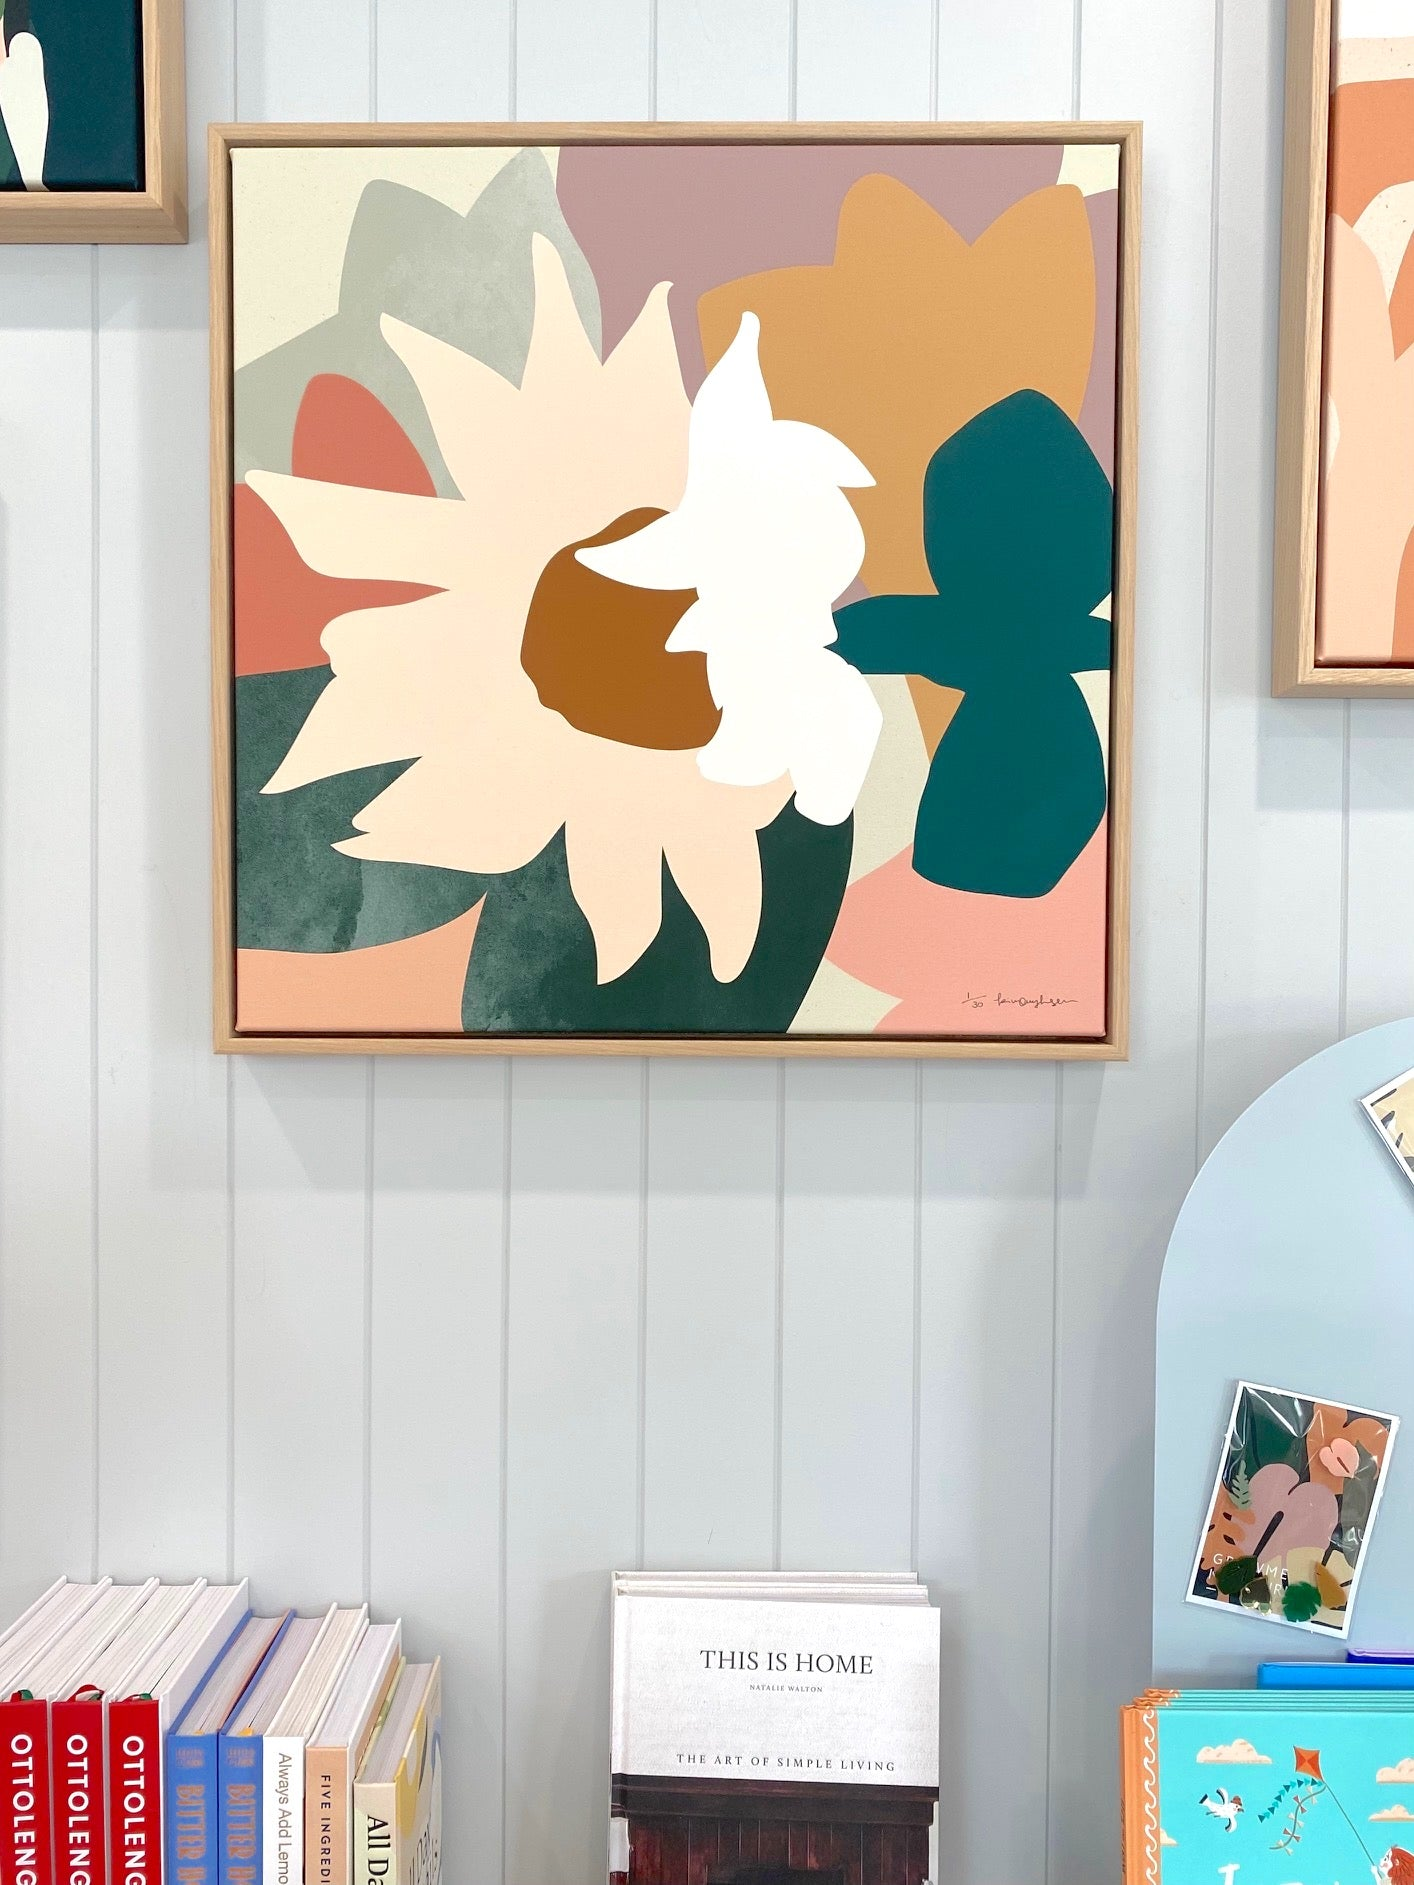 Oak Framed Kimmy Hogan 'Paper Daisies' canvas print - 63x63cm - Store pick up only (6155063001276)